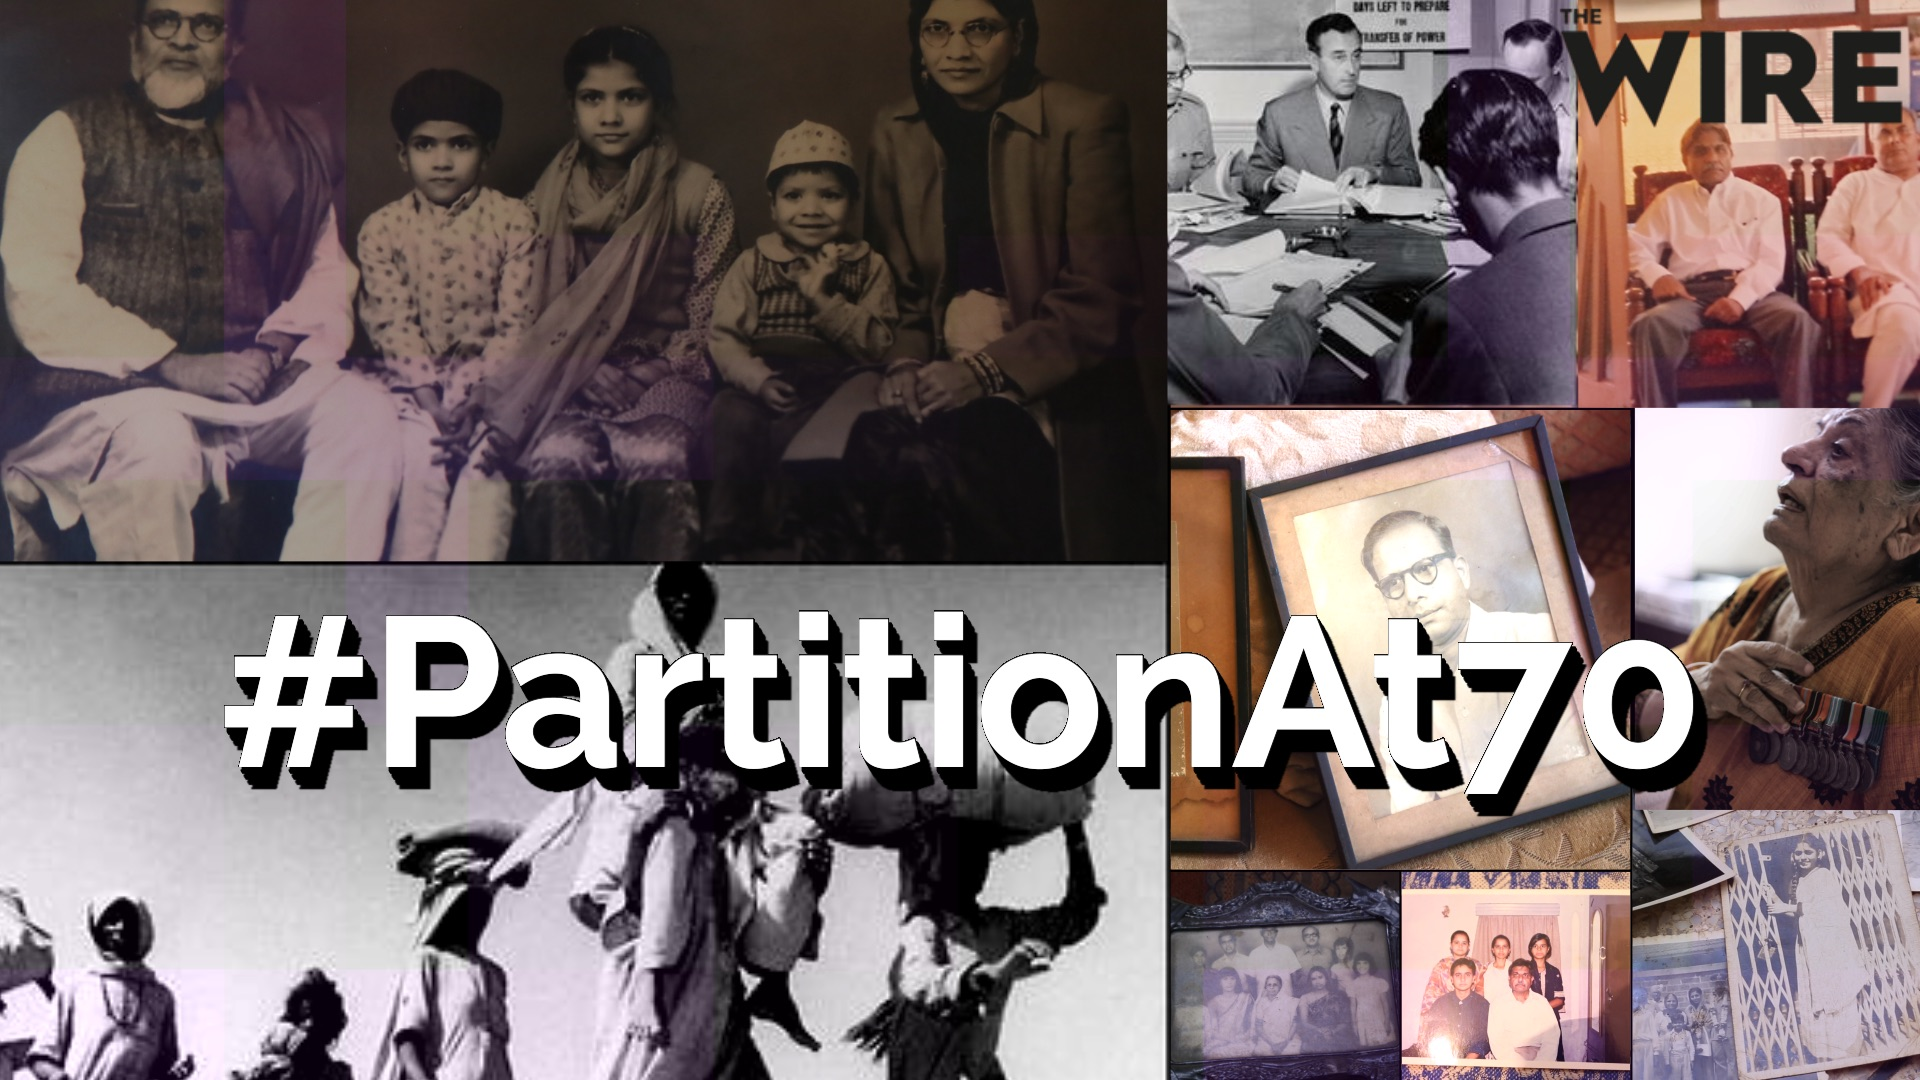 #PartitionAt70: Retrieving History From the Fractures of Memory